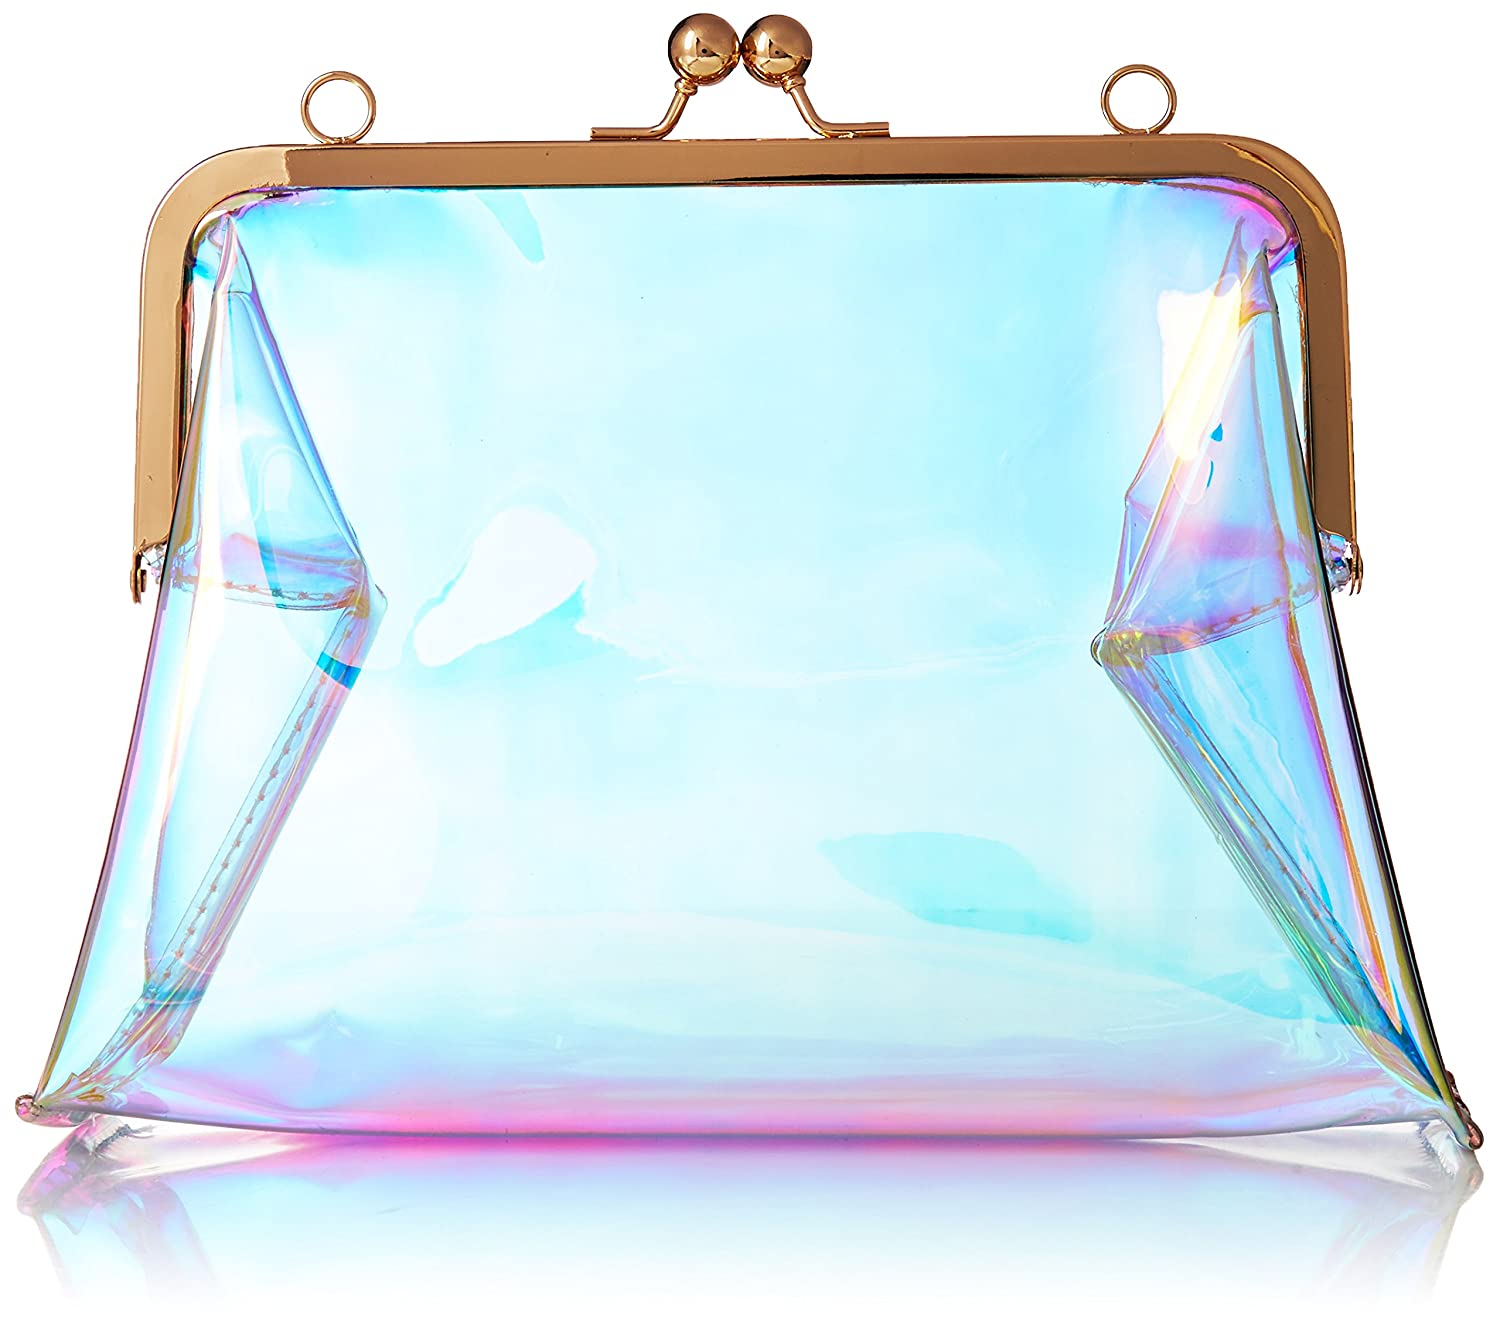 Hoxis Clear Transparent PVC Kiss Lock Chain Cross Body Bag Womens Clutch HX-BG-6040A